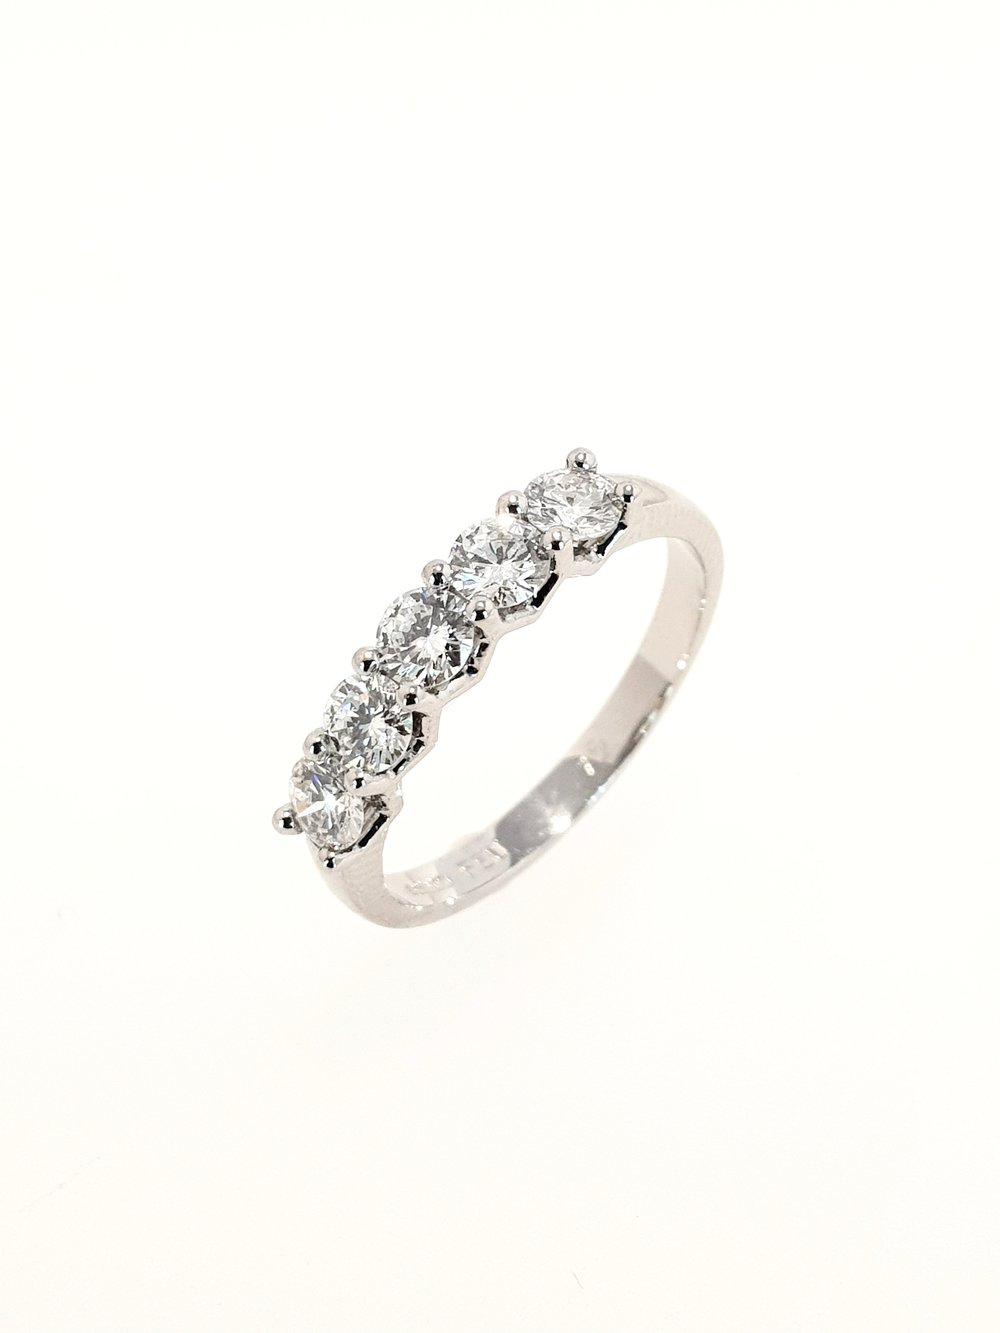 Platinum 5 Stone Eternity Ring  .75ct, H, SI1  Stock Code: N8935  £2500